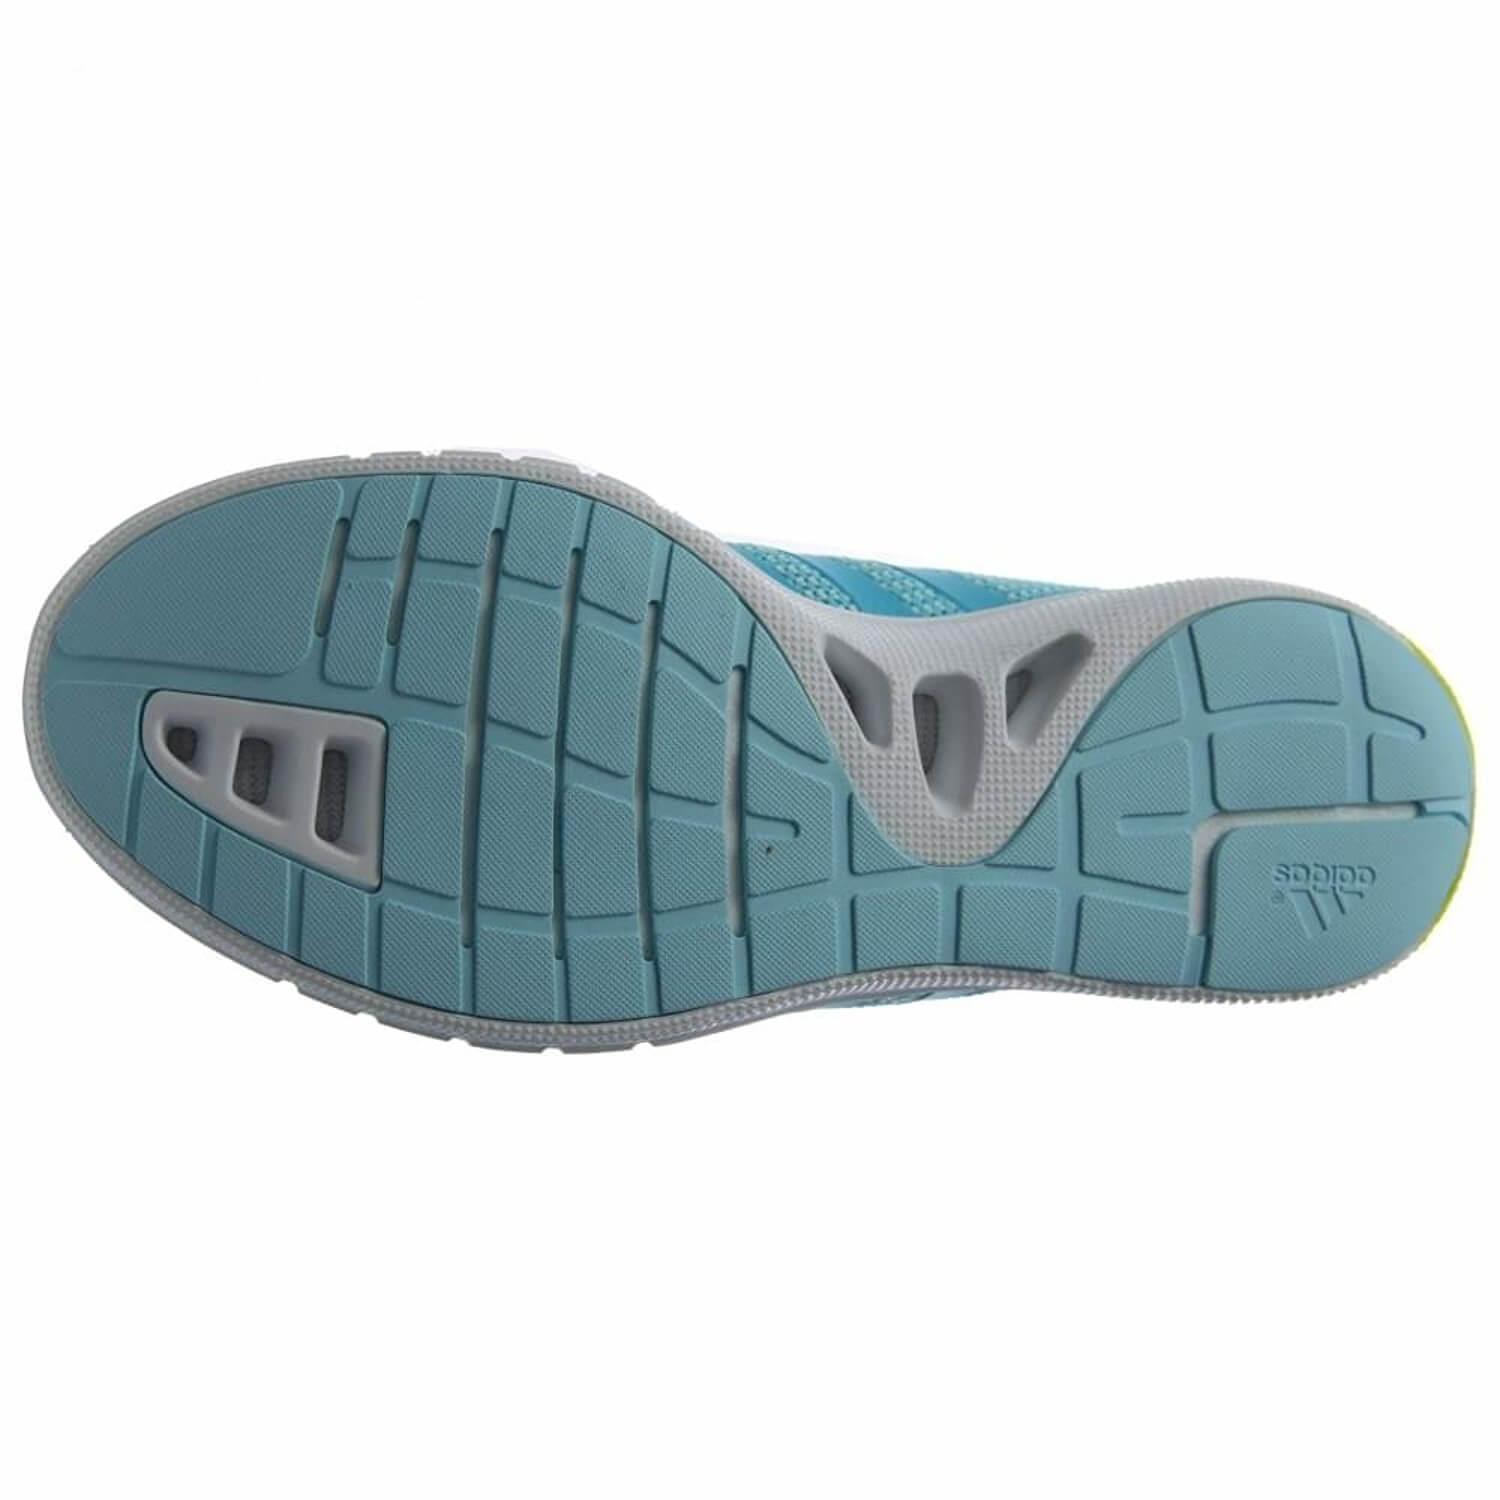 the Adidas Climacool Fresh 2.0 sole has ventilation holes to allow air to flow around the foot